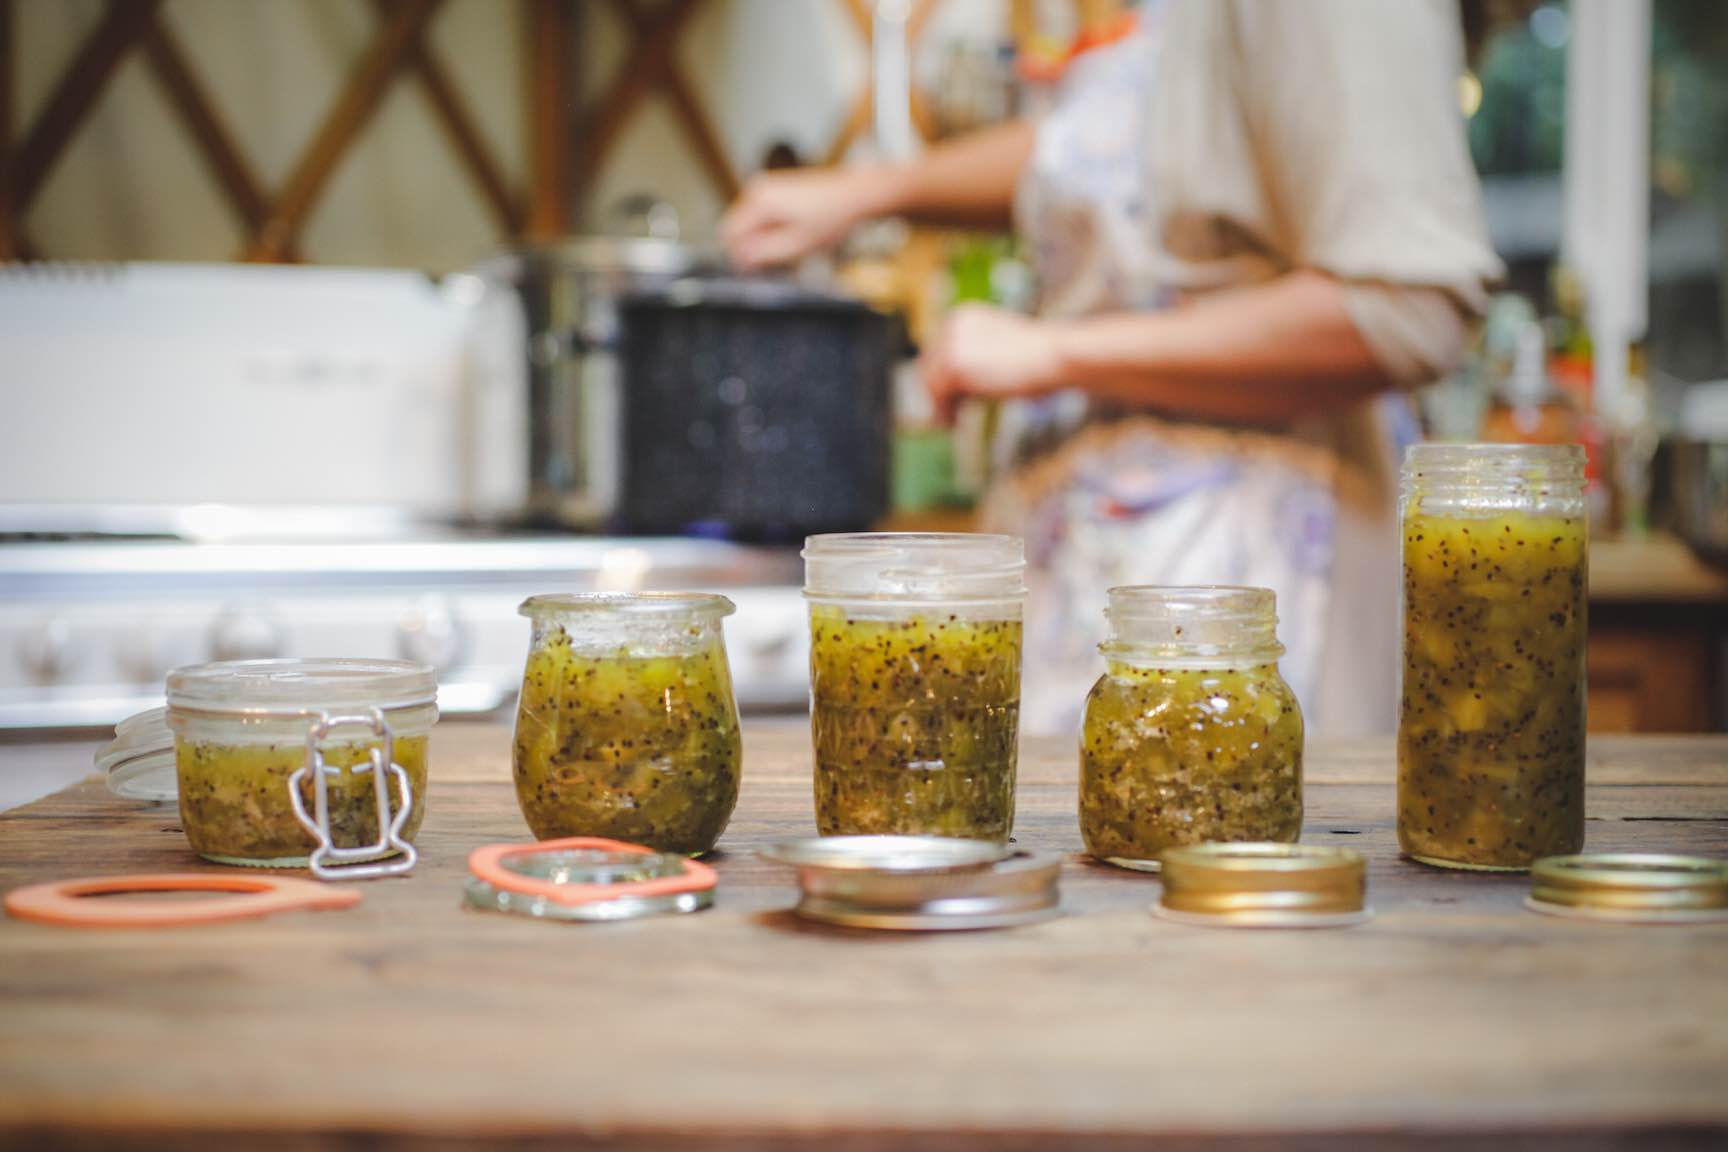 kiwi jam with lemon zest recipe - home canning and preservation